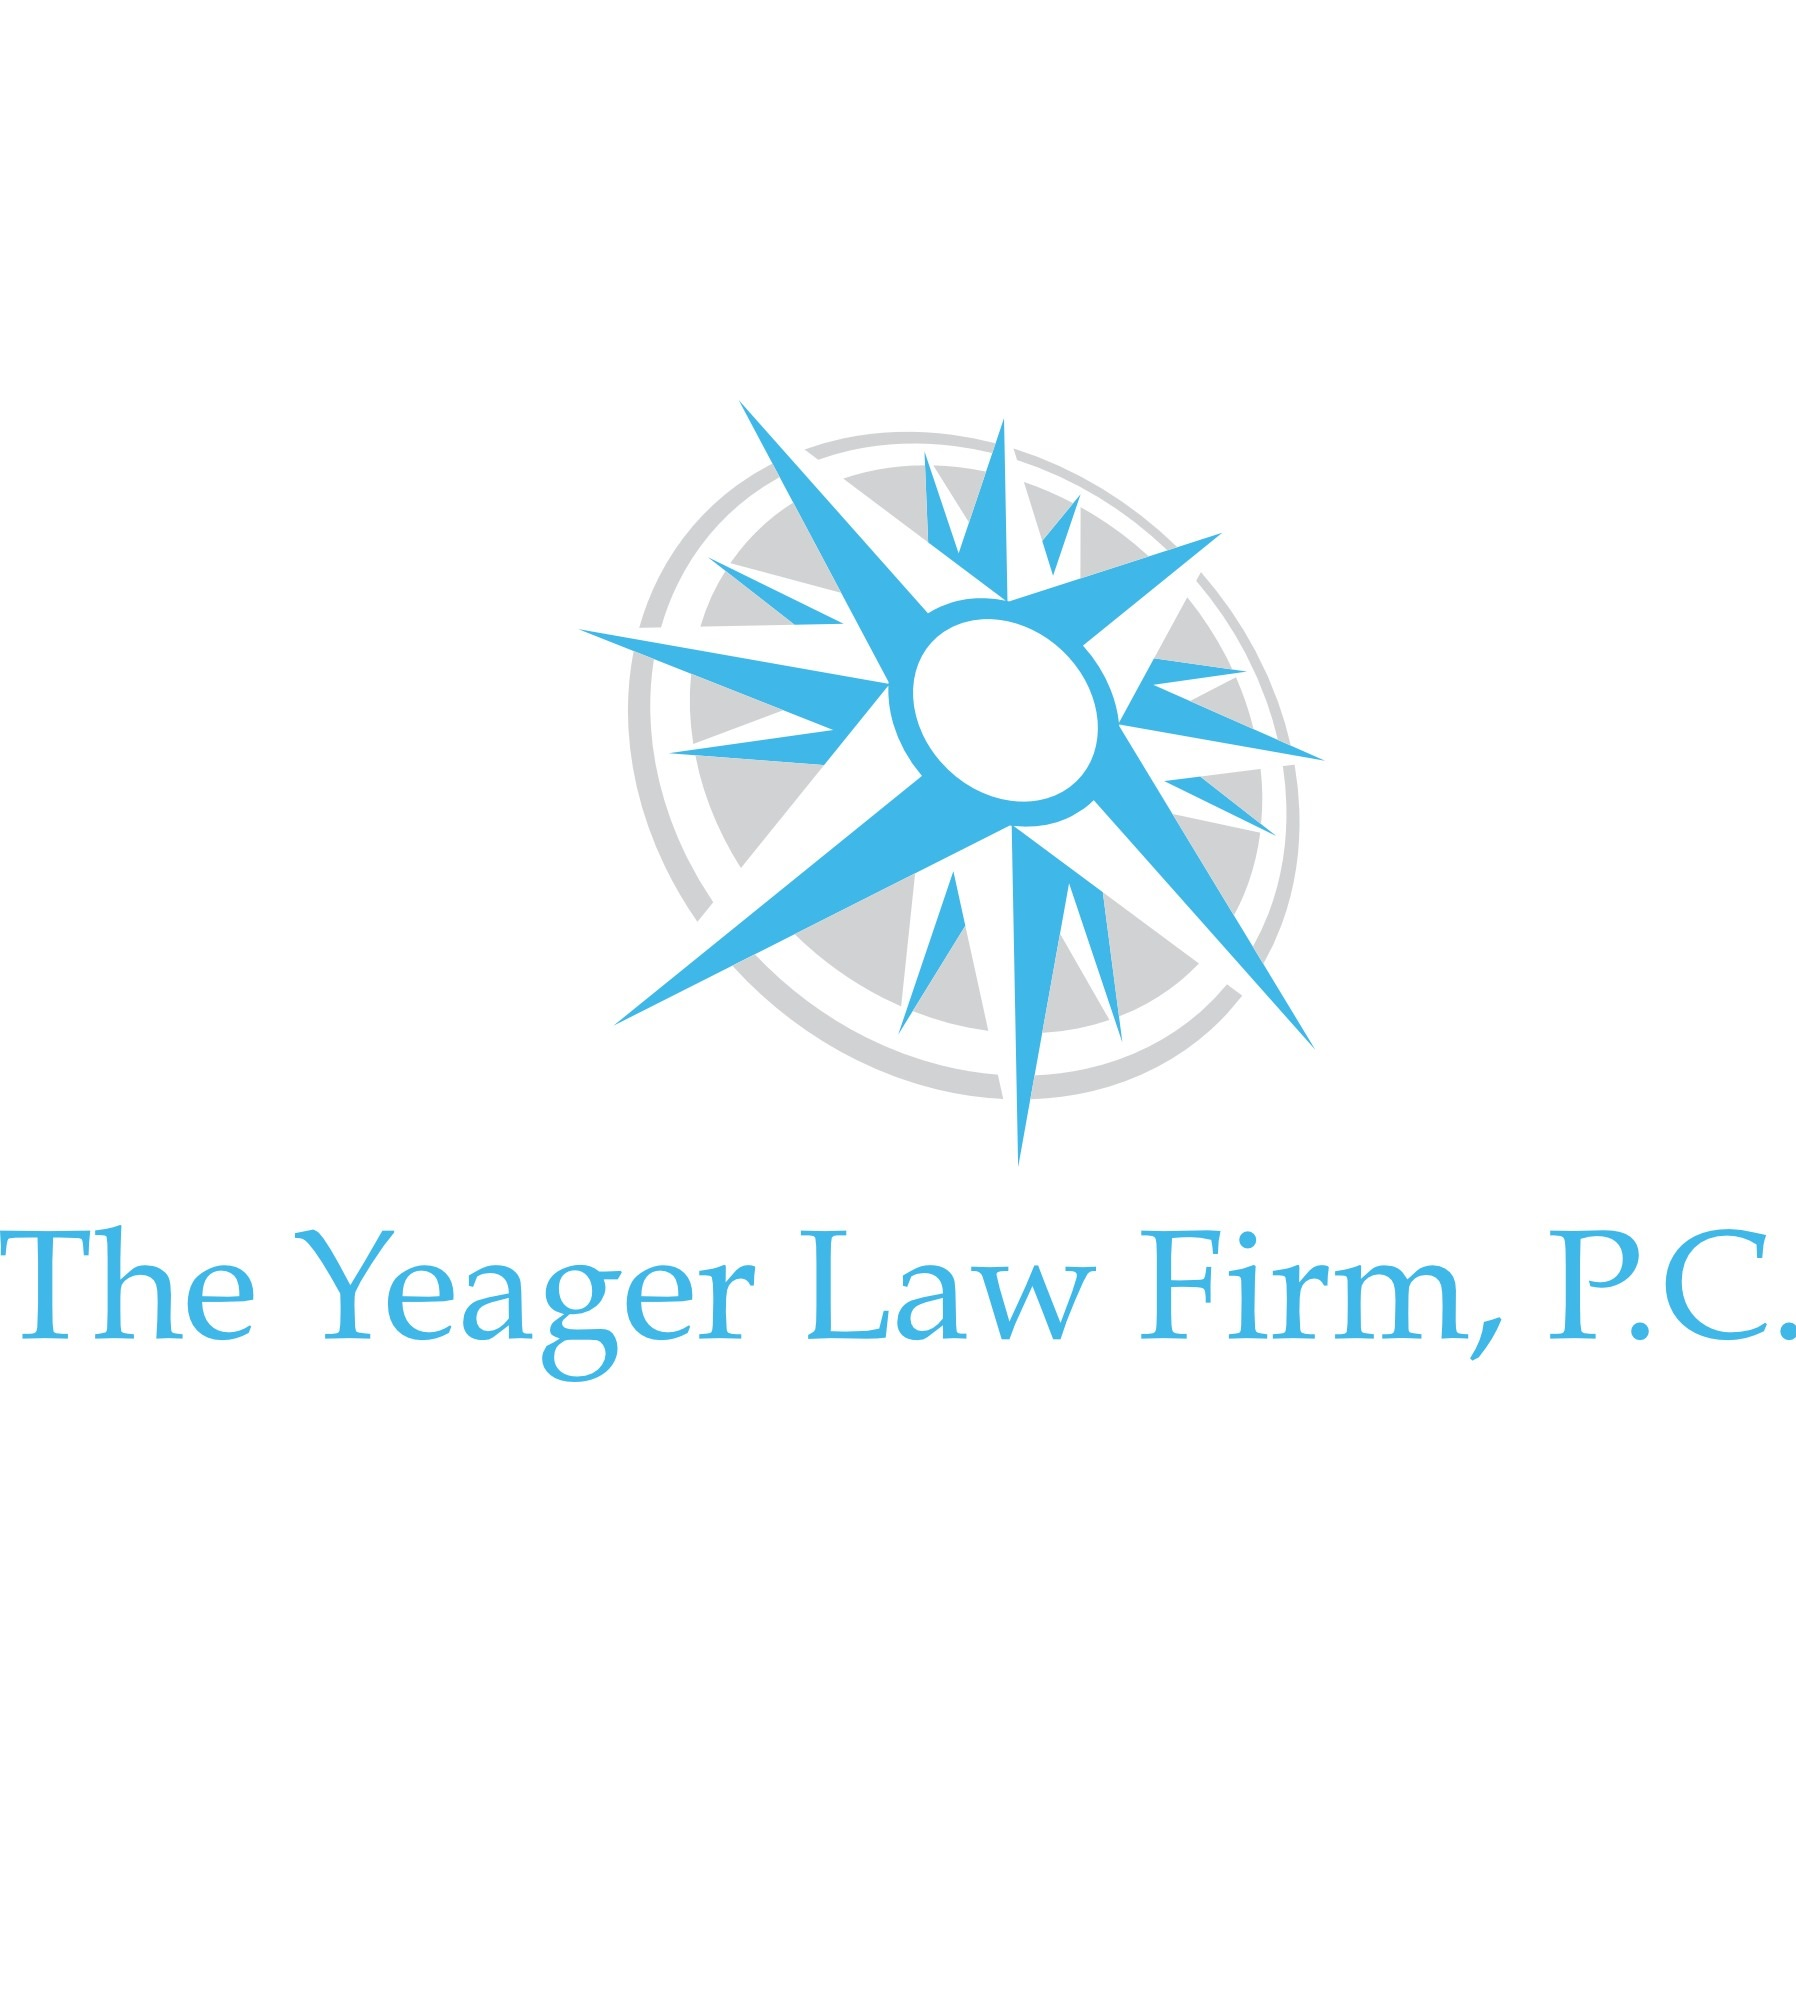 The Yeager Law Firm, P.C.